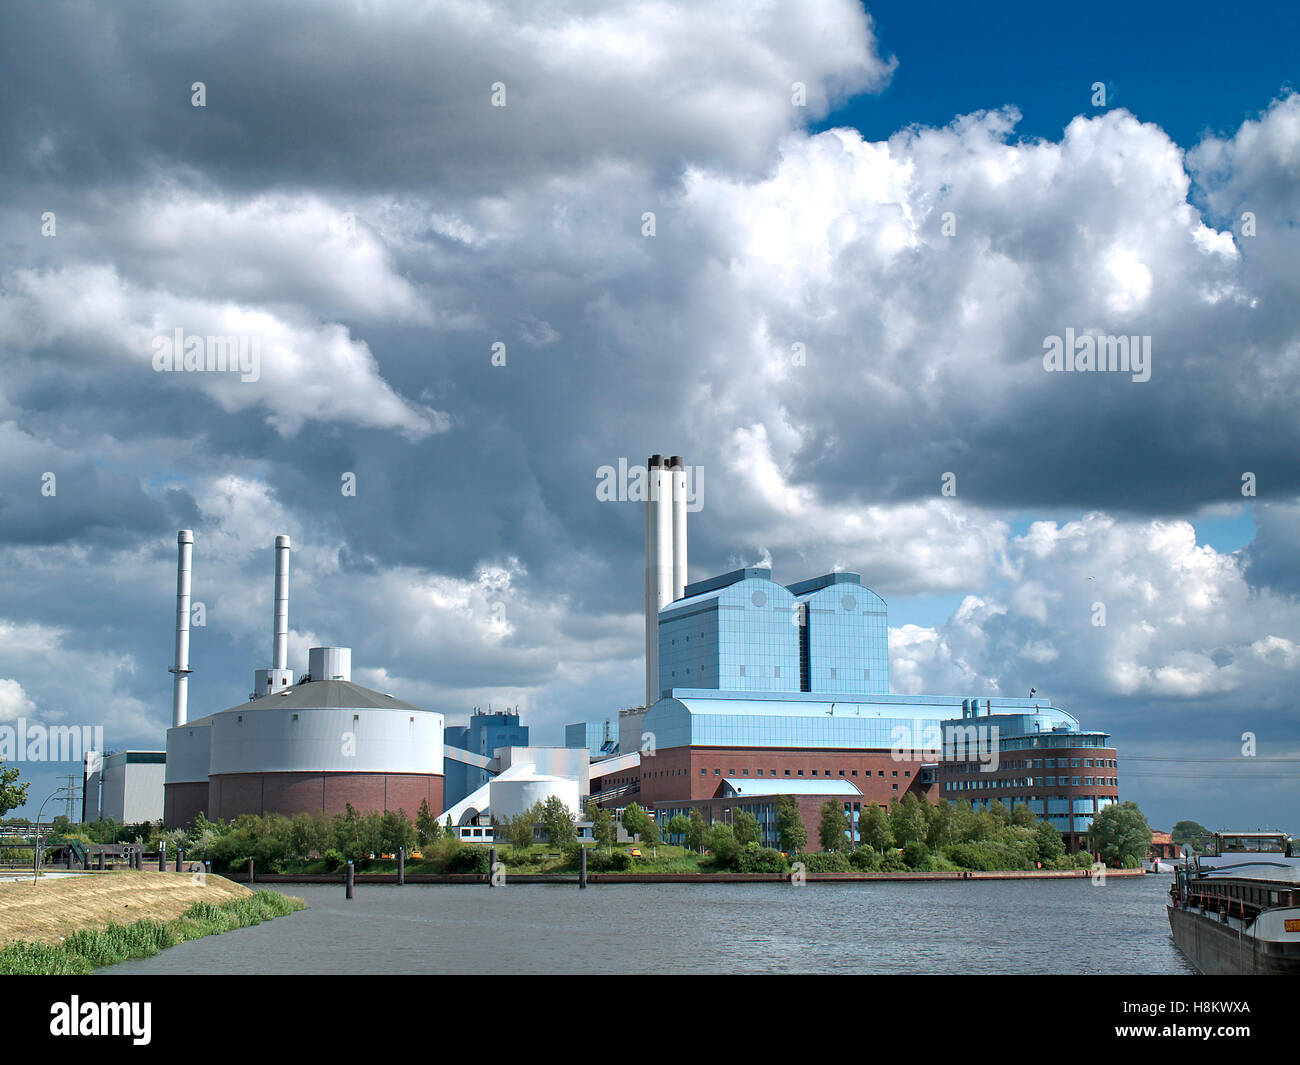 Vattenfall coal-fired power plant on the Elbe in Hamburg, Germany. - Stock Image